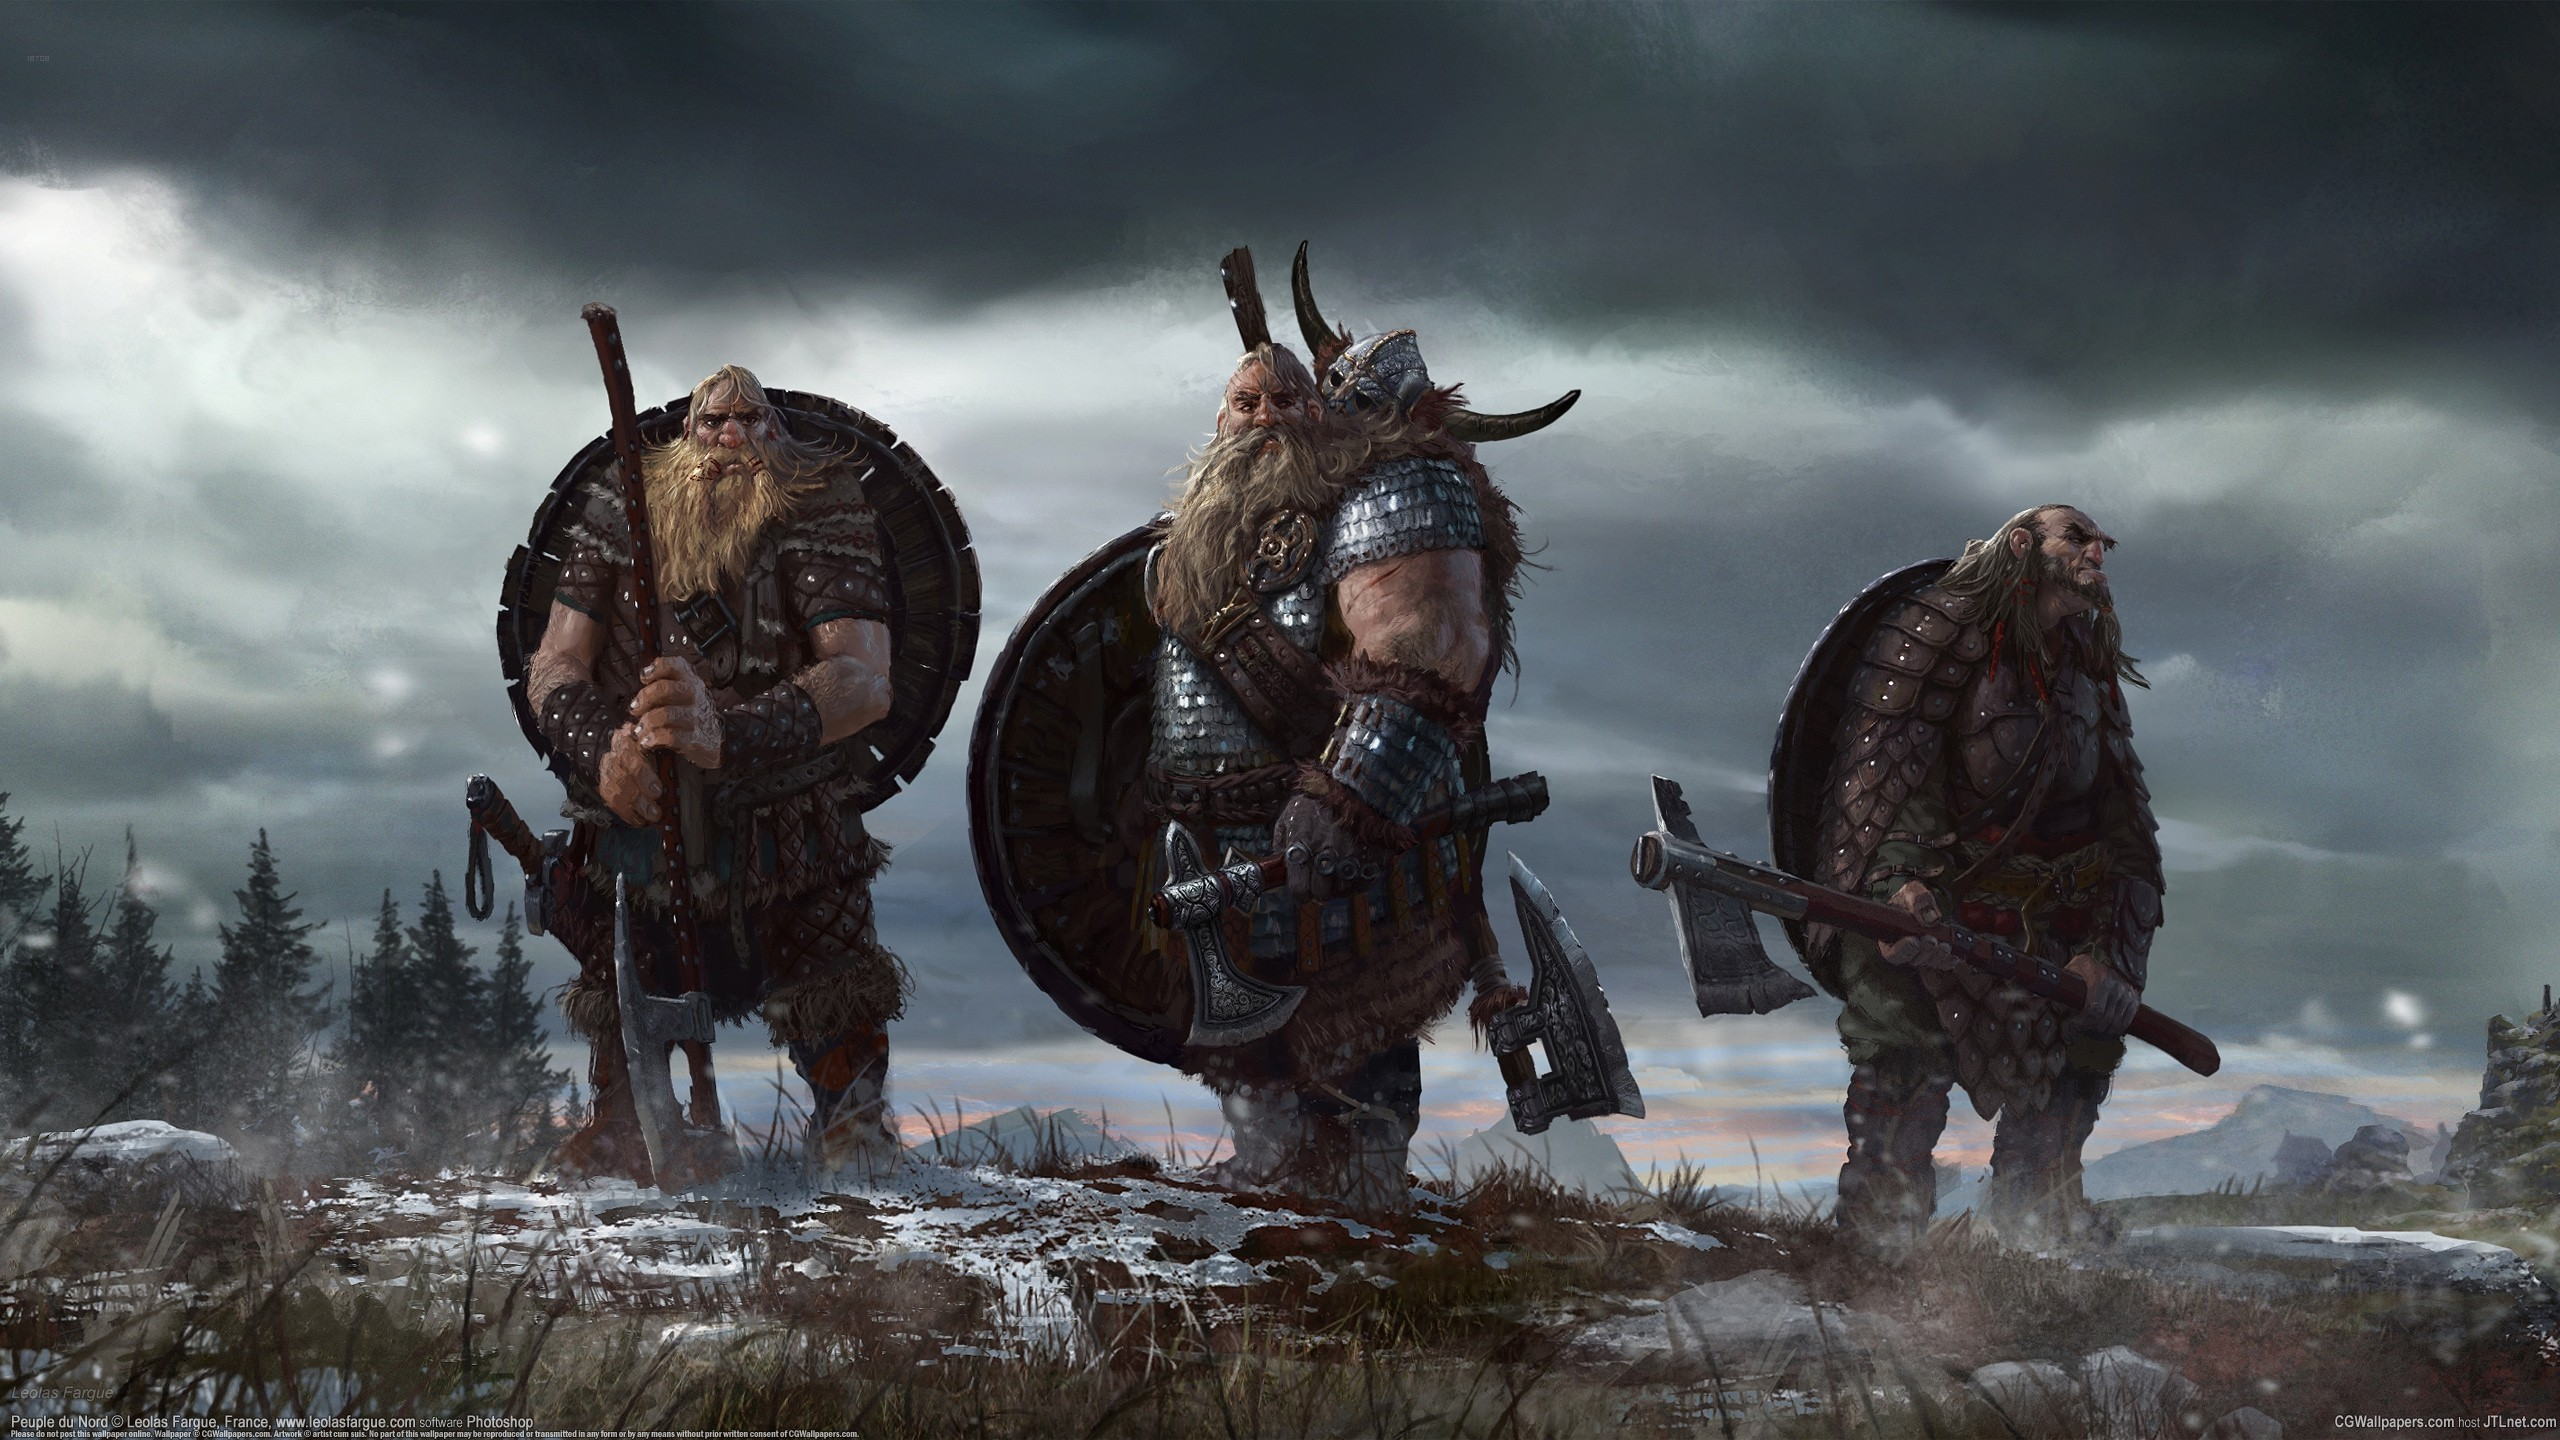 69 Hd Viking Wallpapers on WallpaperPlay 2560x1440